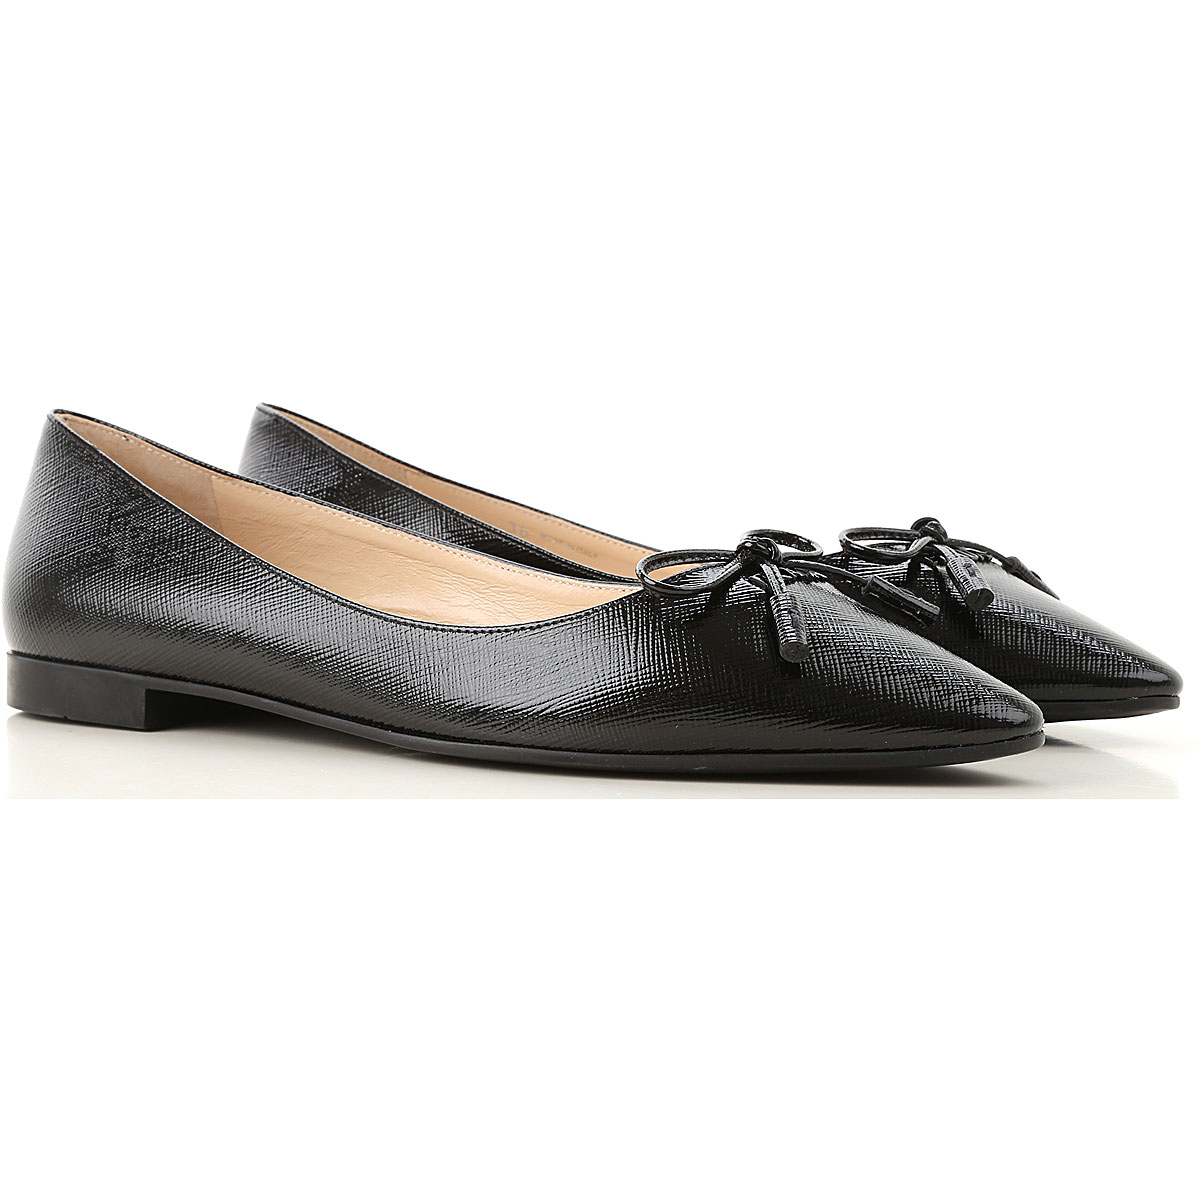 Prada Ballet Flats Ballerina Shoes for Women On Sale, Black, Patent Saffiano Leather, 2019, 5.5 6 6.5 8.5 9